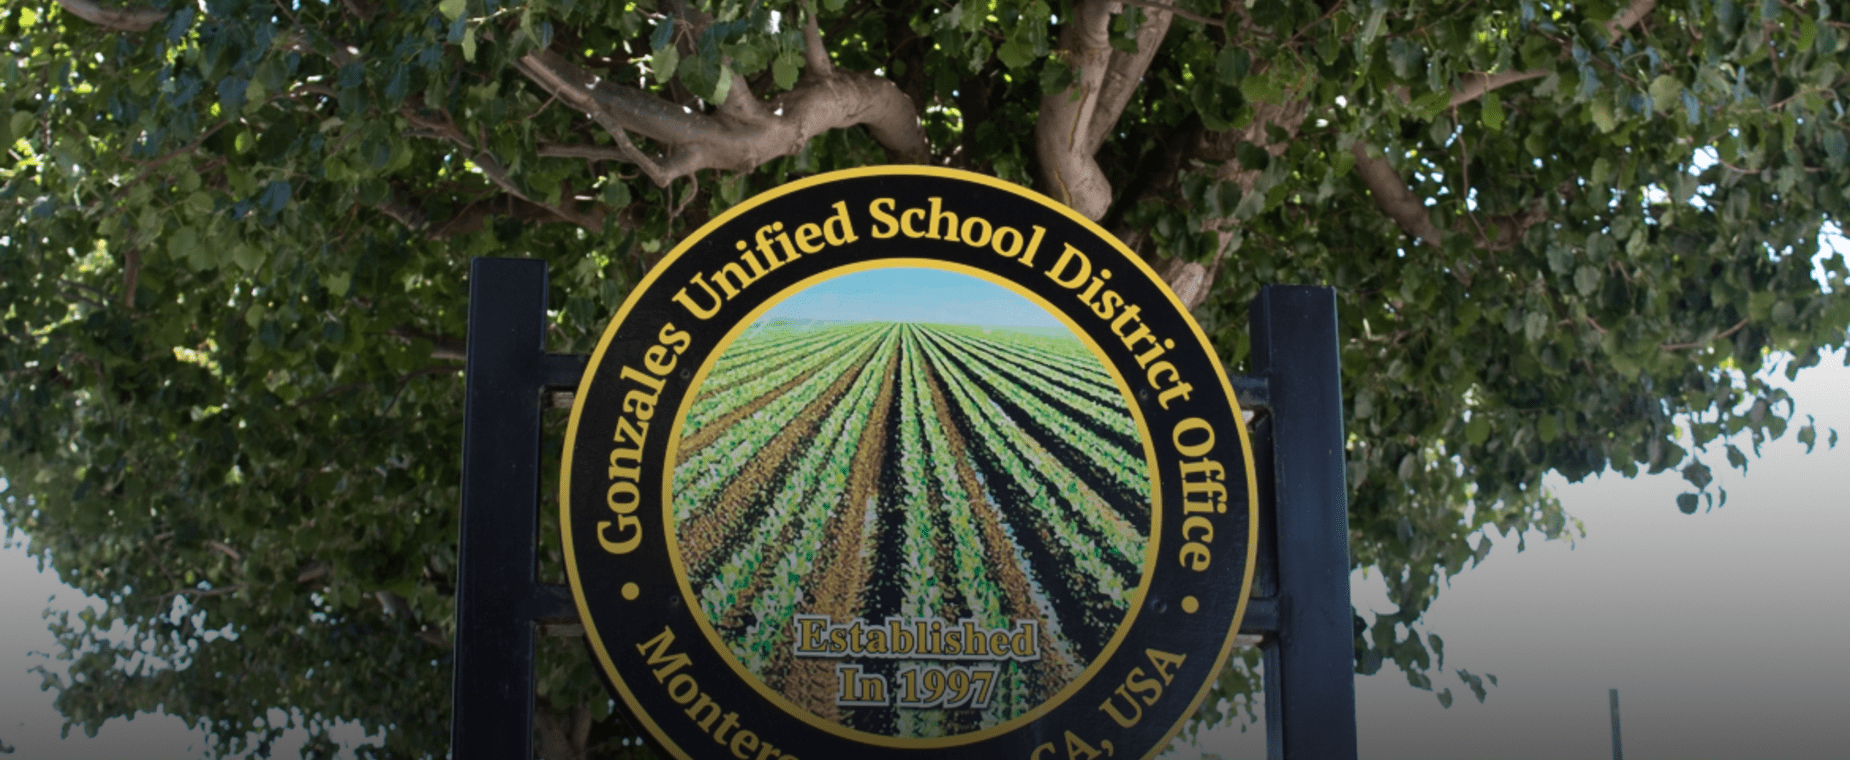 Improving education outcomes in Monterrey County through technology